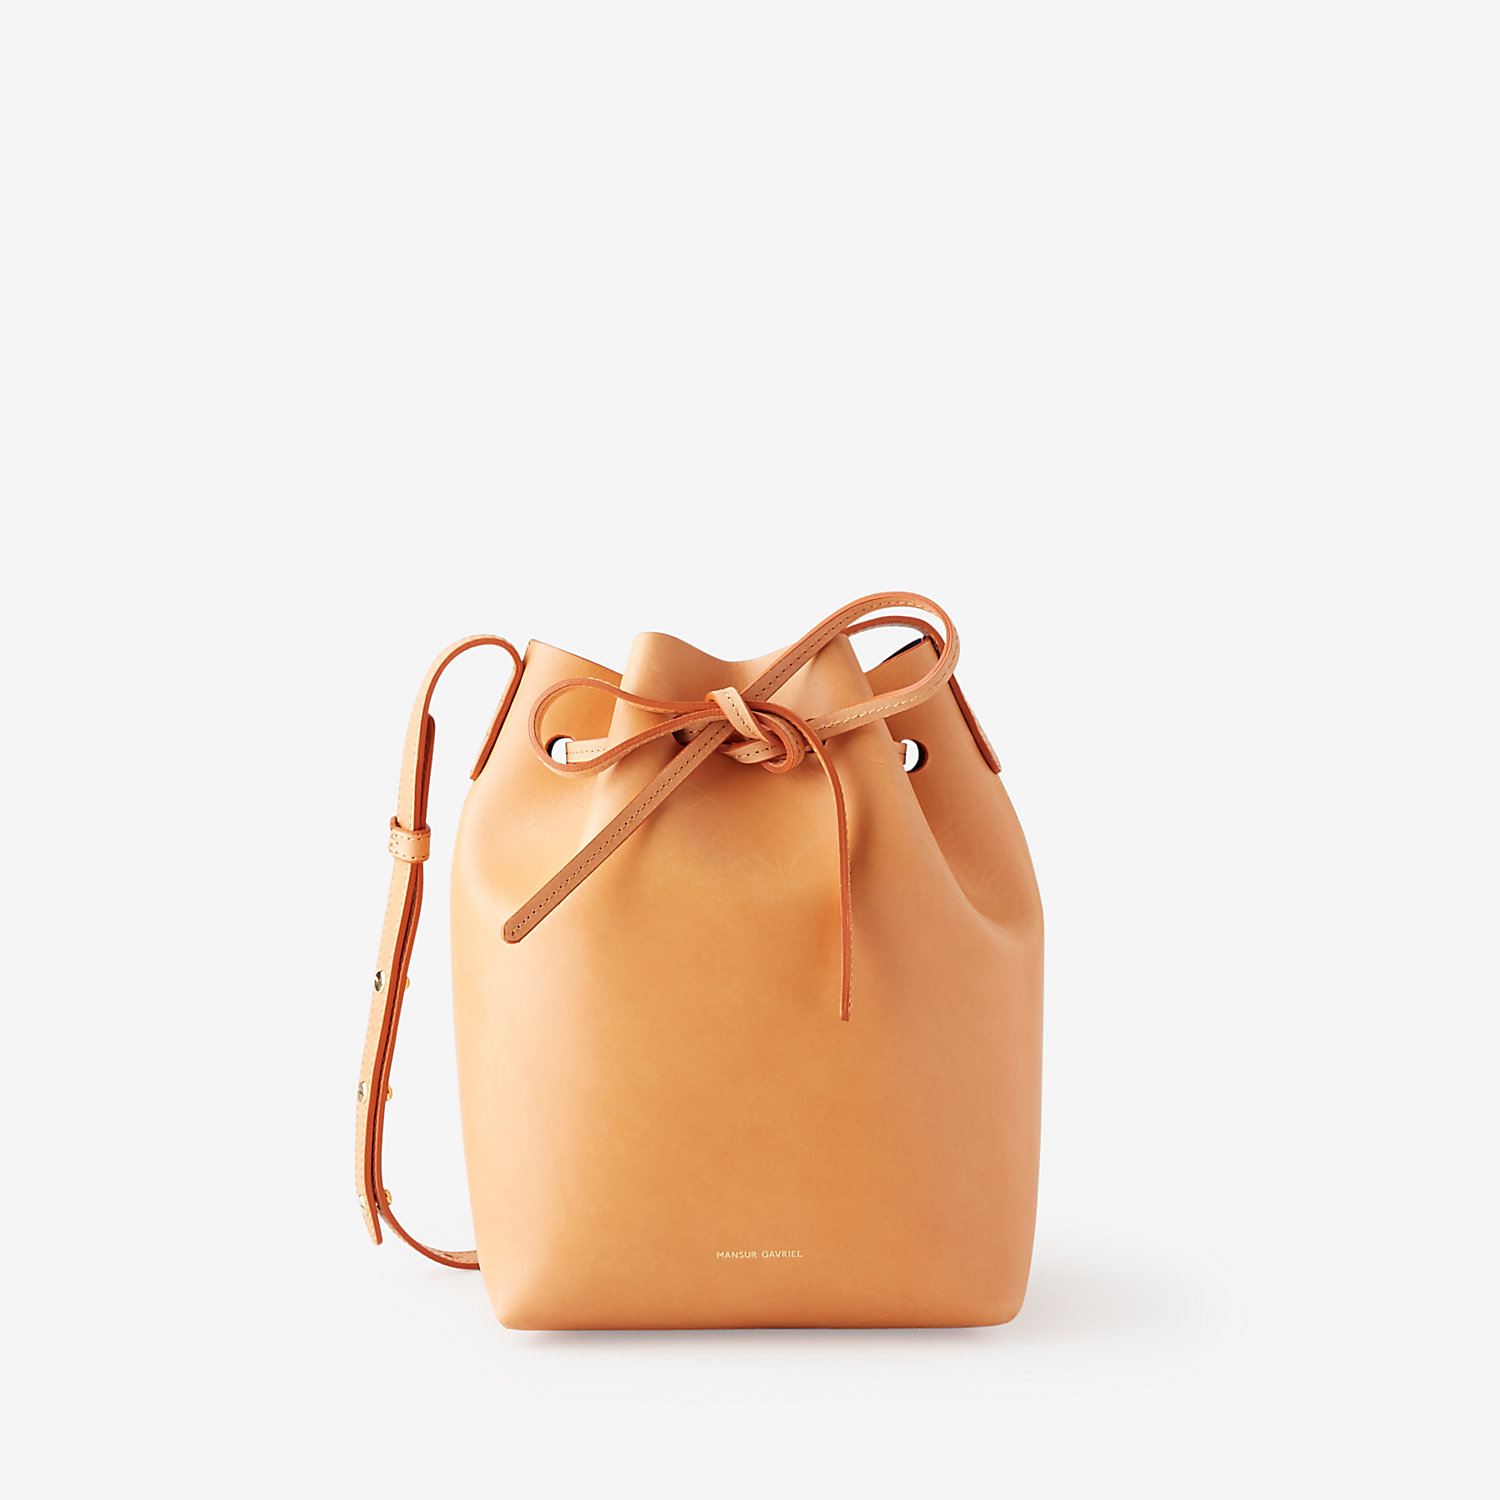 mansur gavriel mini bucket bag in orange cammello royal. Black Bedroom Furniture Sets. Home Design Ideas